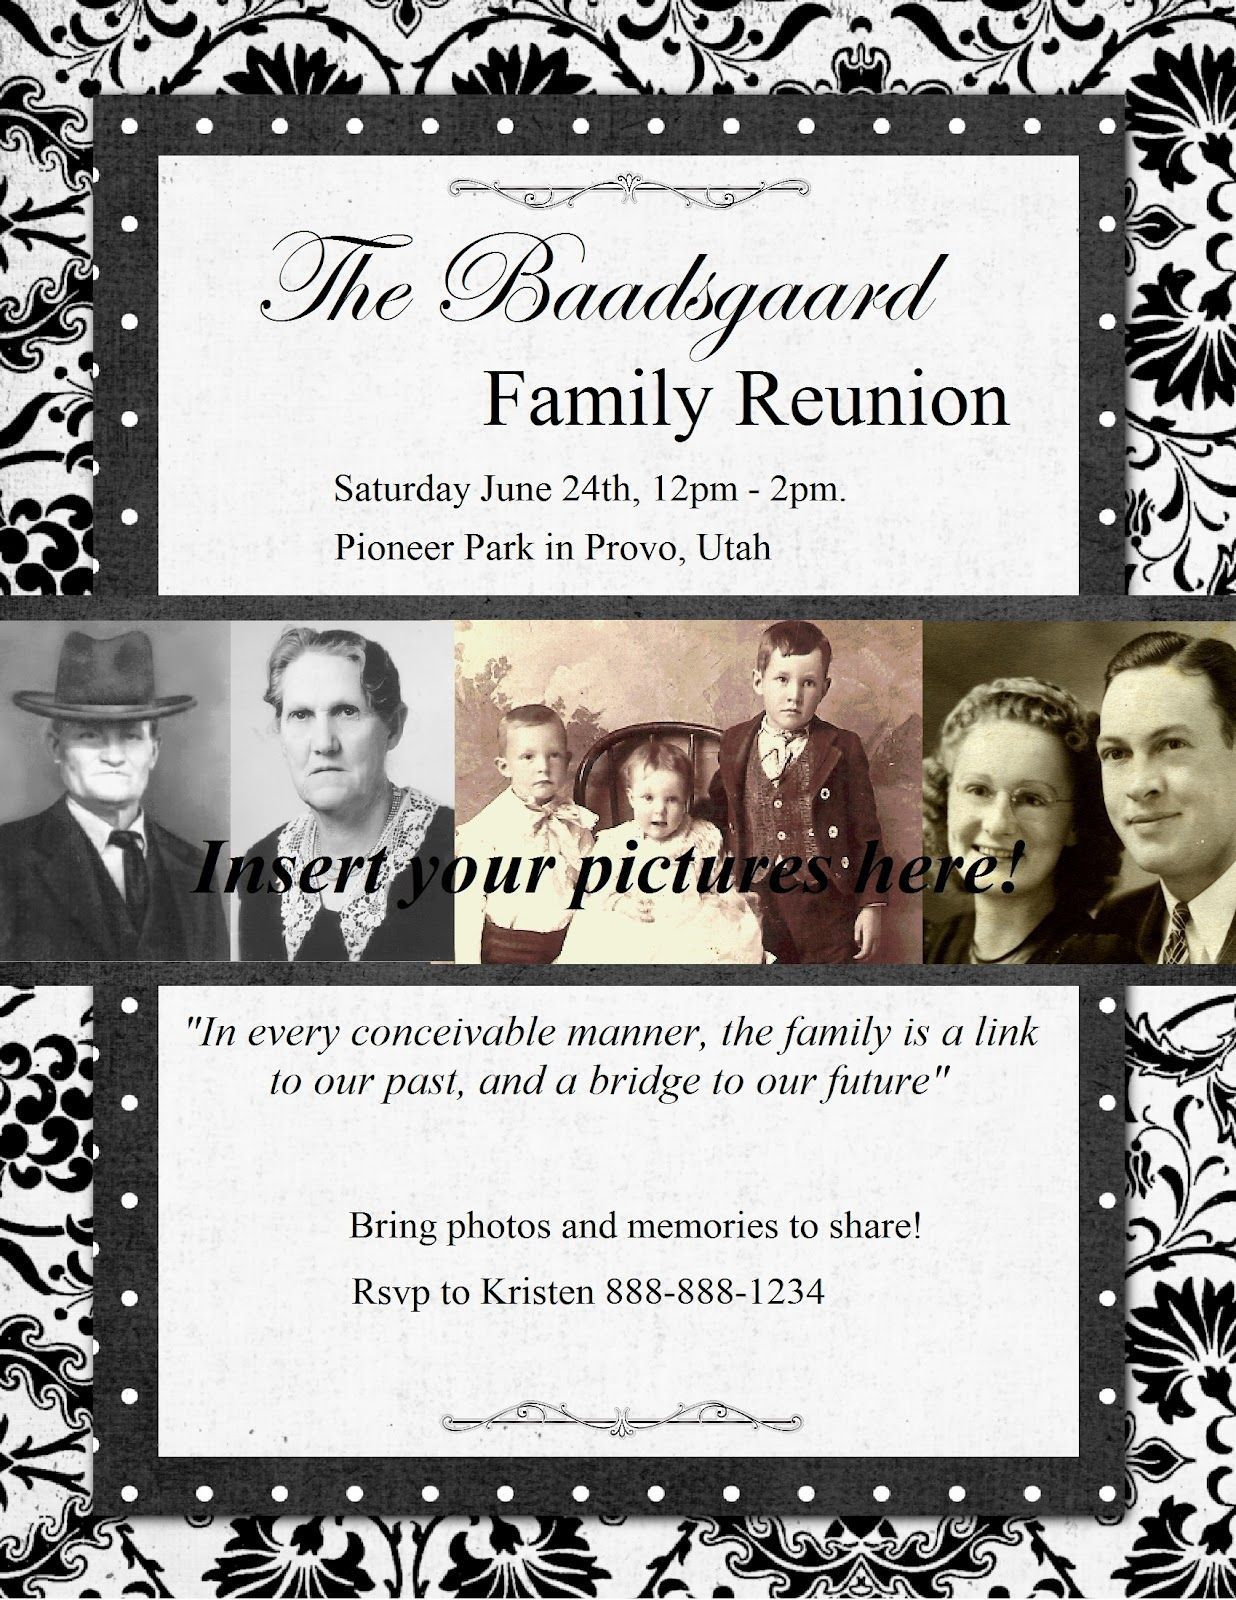 007 Frightening Family Reunion Flyer Template High Resolution  Templates Free ForFull